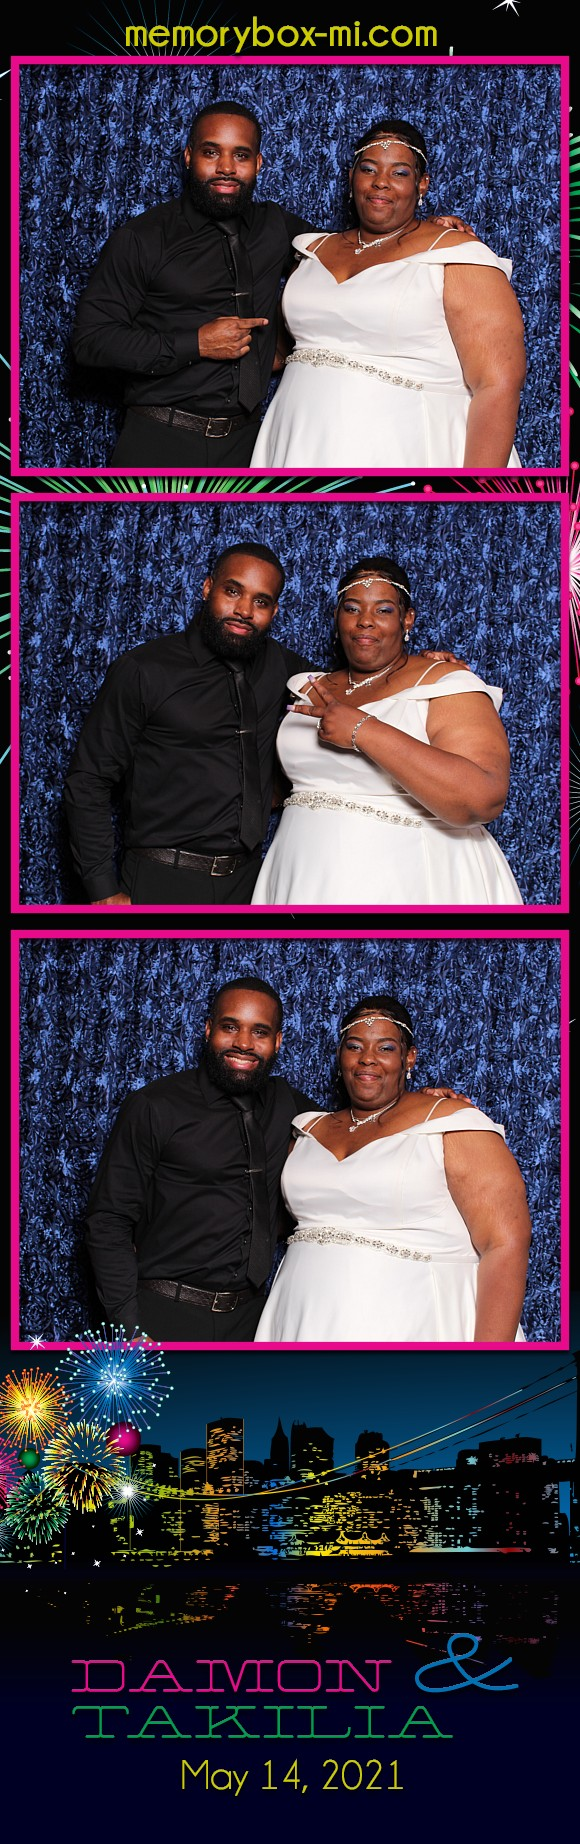 Damon & Takilia's Wedding   View more photos from the event at gallery.detroitphotobooth.com/u/photobooth/Damon-Takilias-Wedding